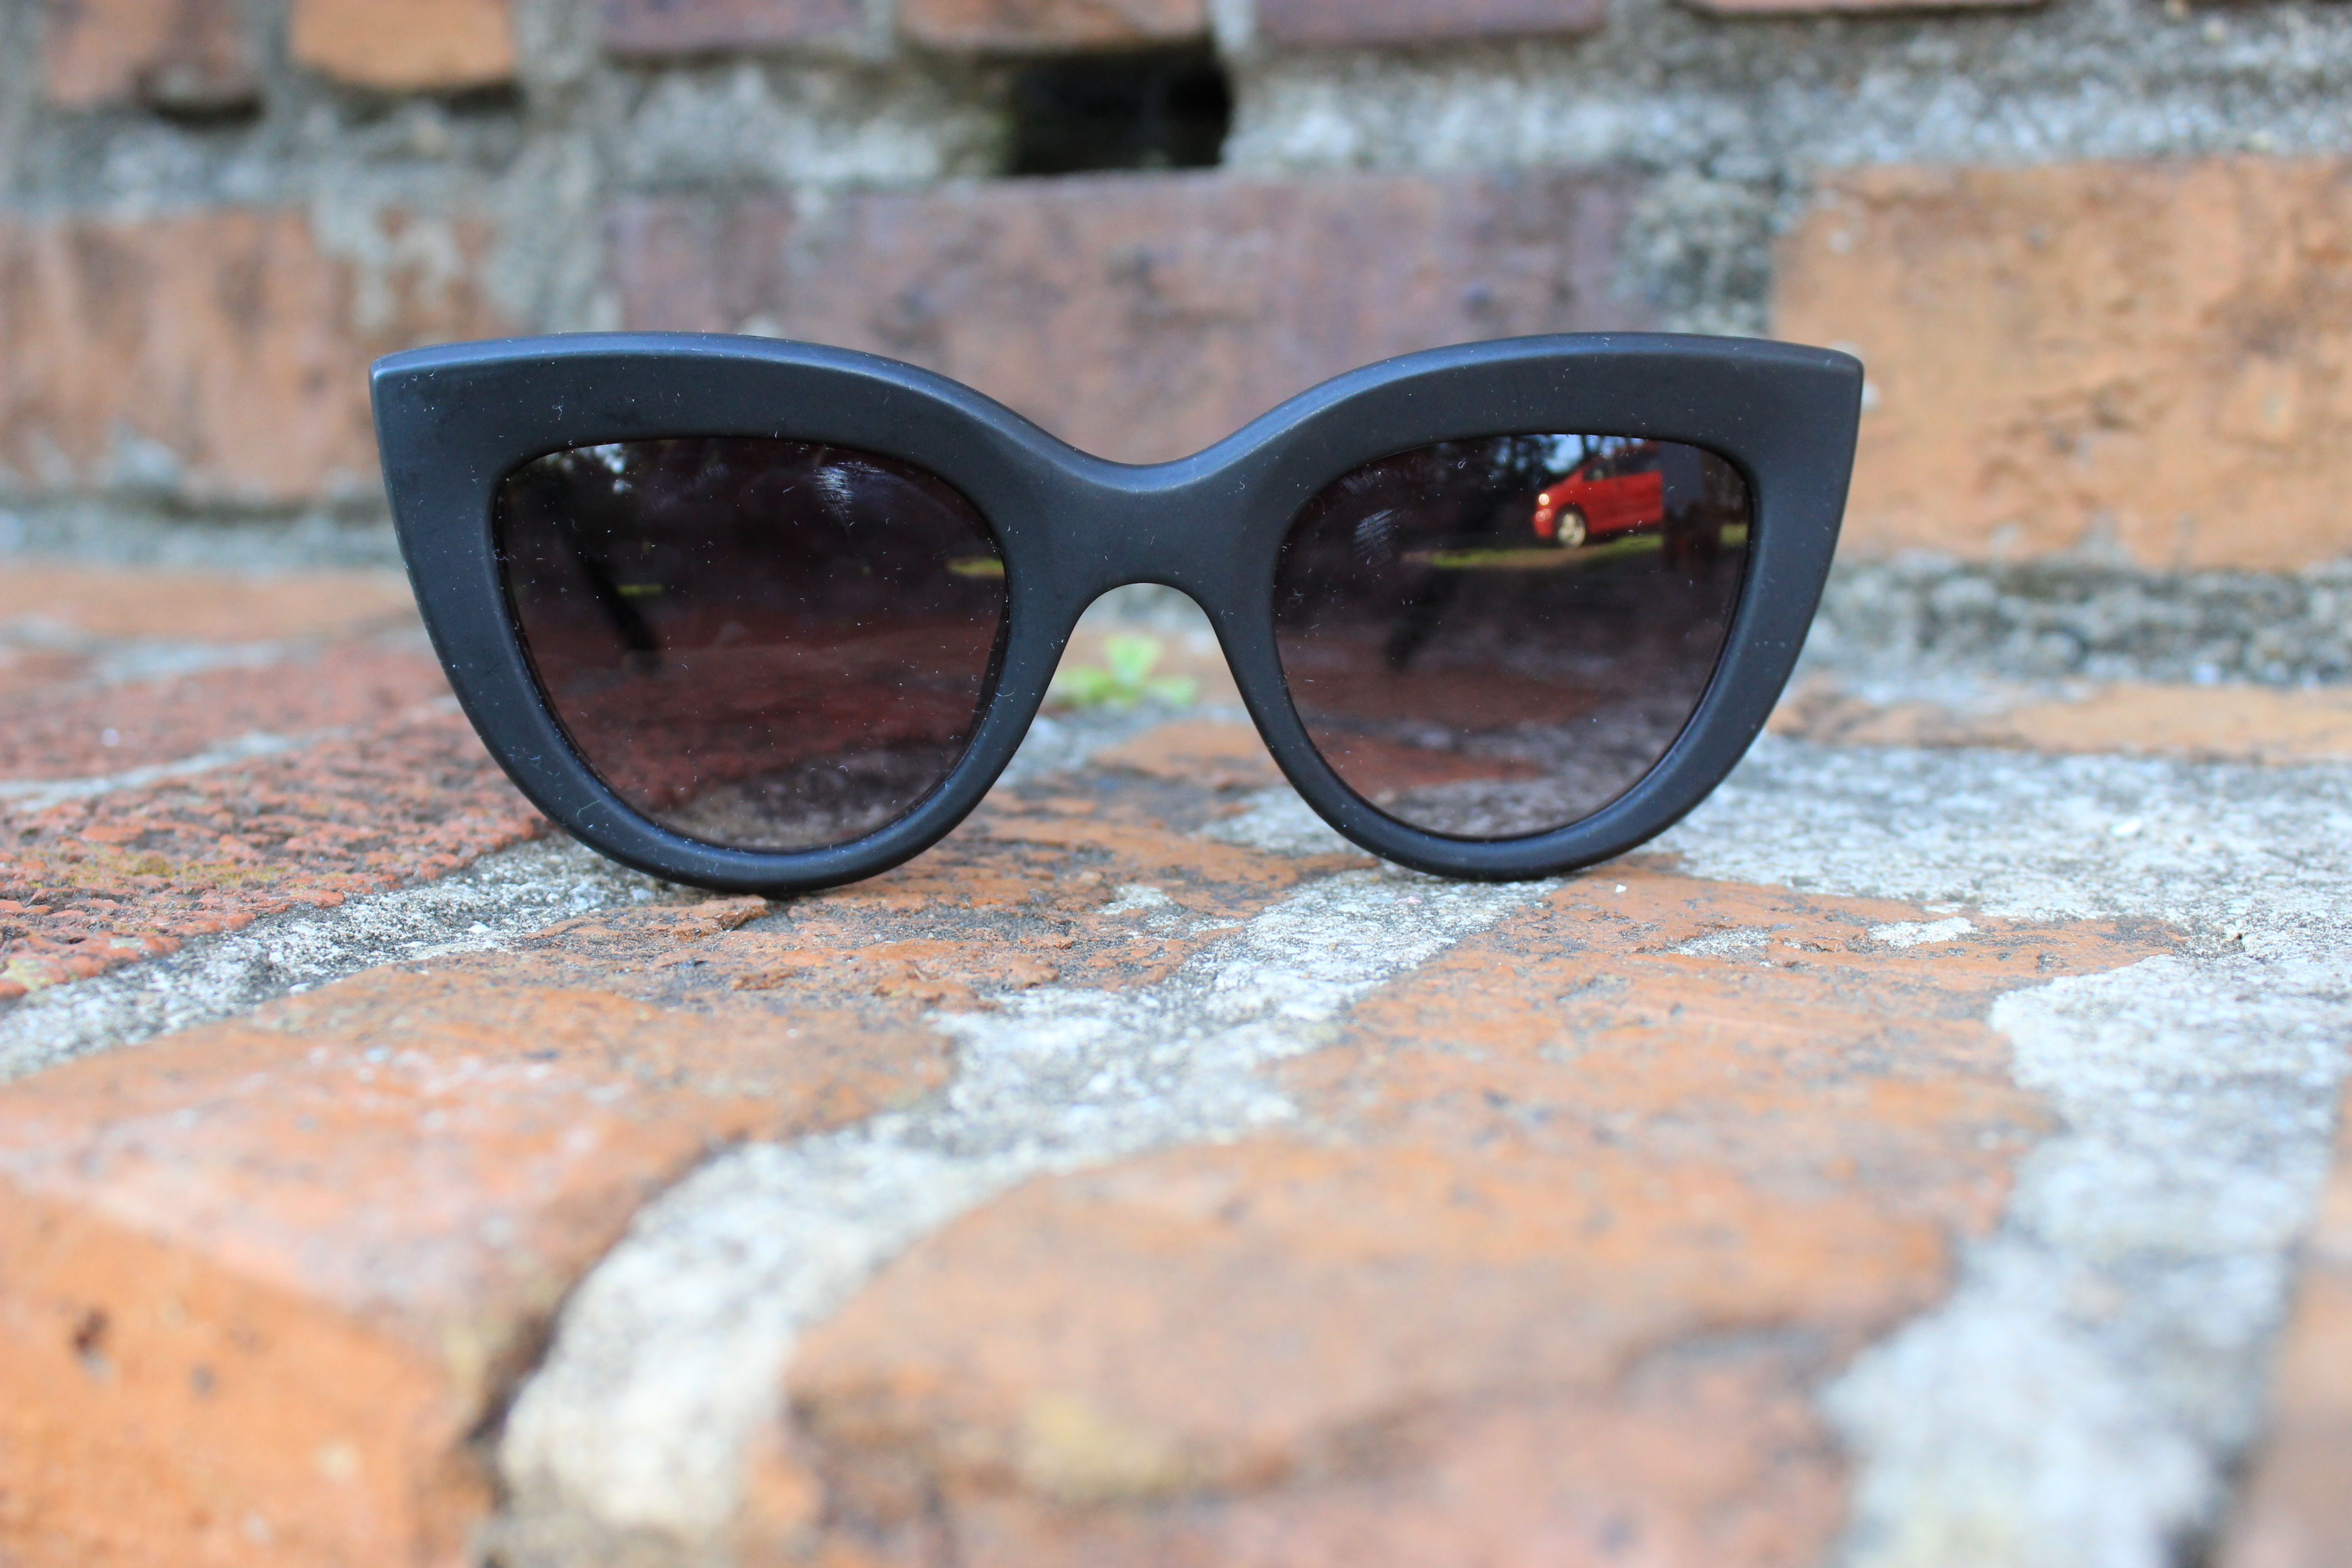 Style-Guide-Summer-Sunglasses-Summer-Sunglass-trends-2016-mirror-tinted-sunglasses-mirrored-ombre-effect-lenses-aviator-trend-2016-cat-eye-frame-sunglasses-2016-round-frame-sunglass-trend-thick-square-frame-sunglasses-Oohlalablog-15